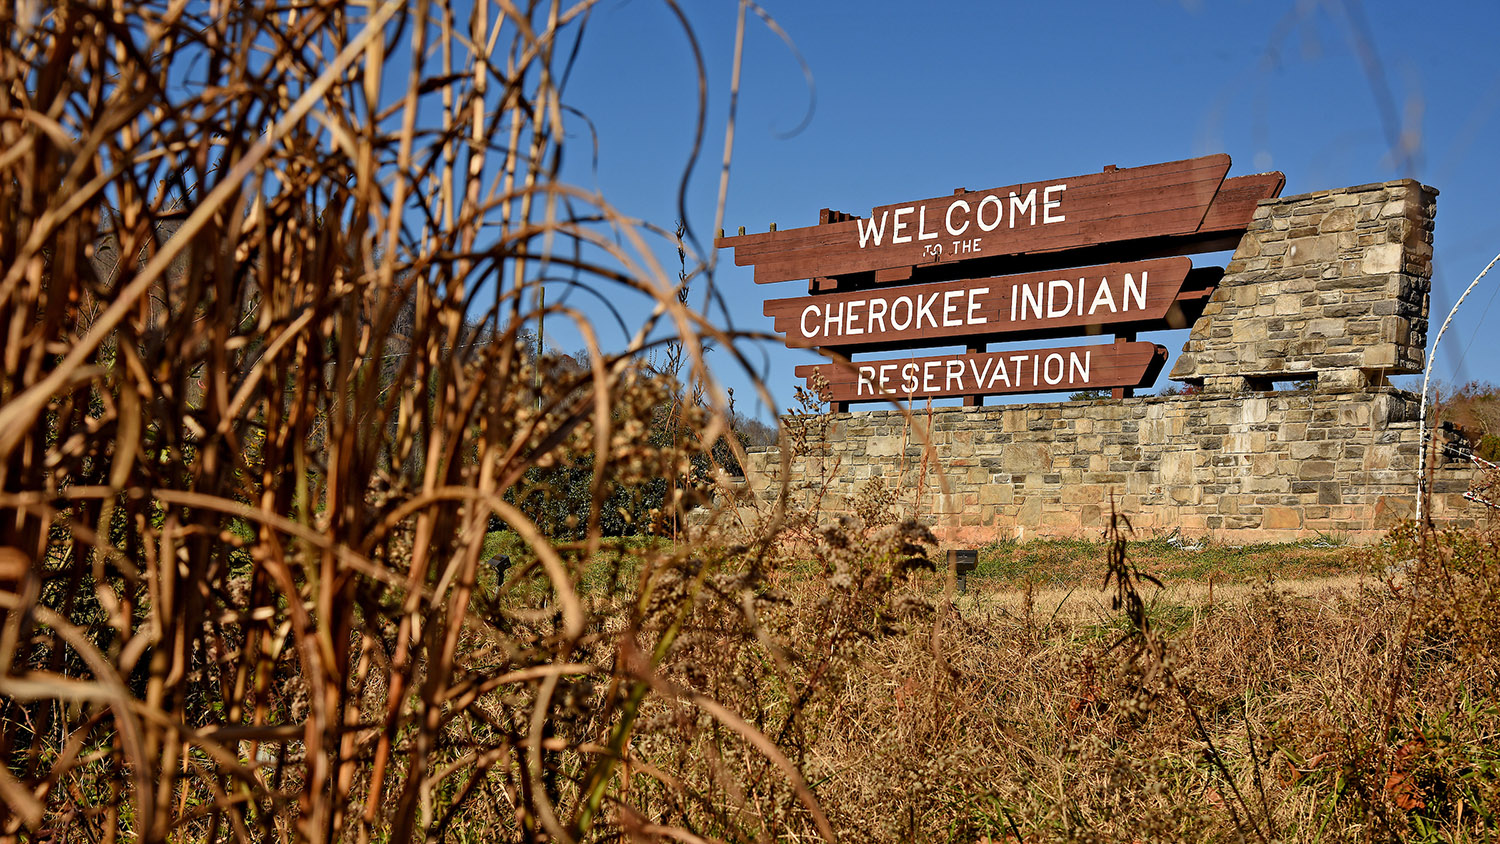 Welcome sign at the Cherokee Indian Reservation